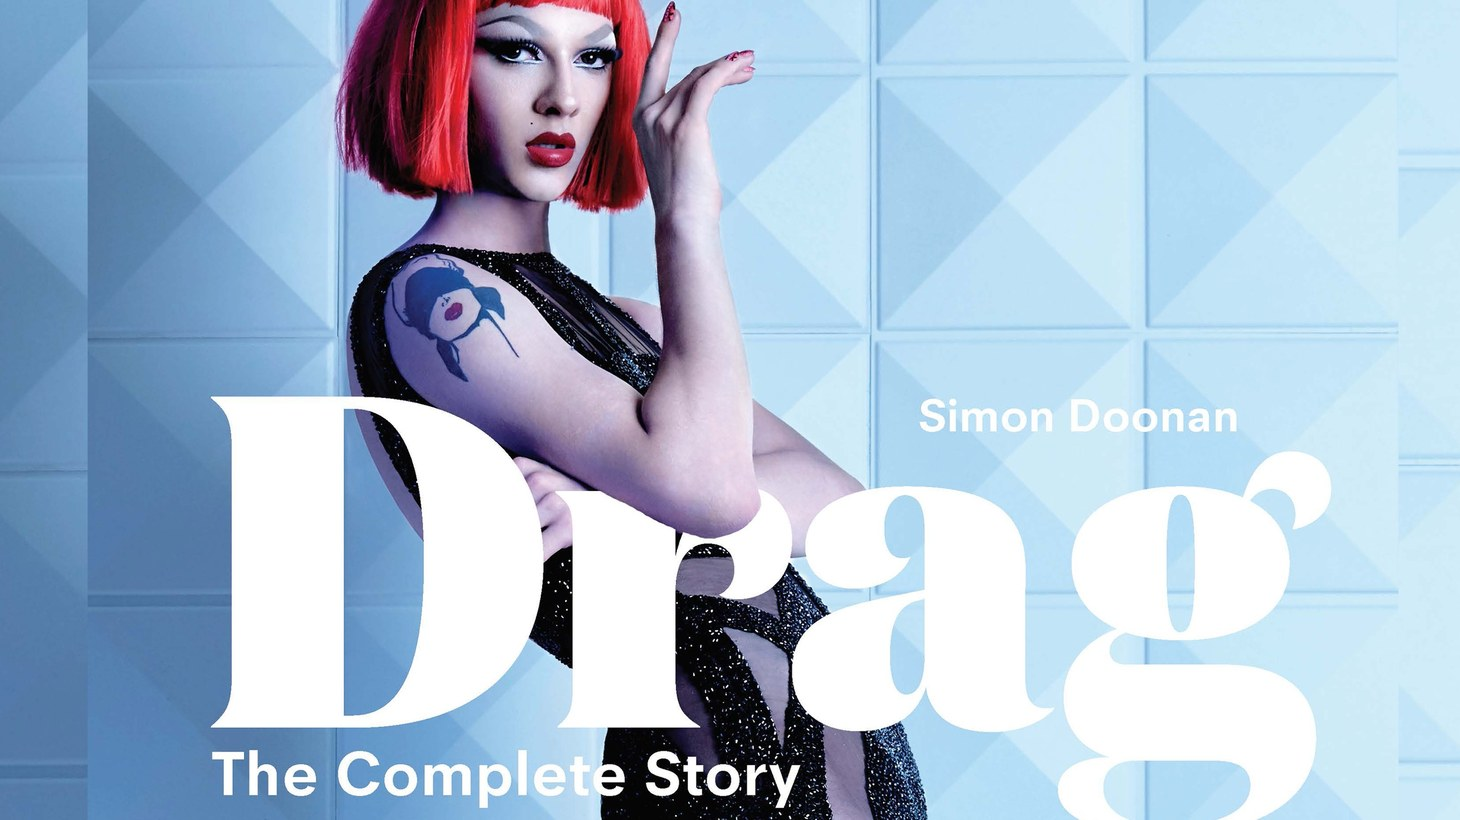 """The front cover of """"Drag: The Complete Story"""" by Simon Doonan."""